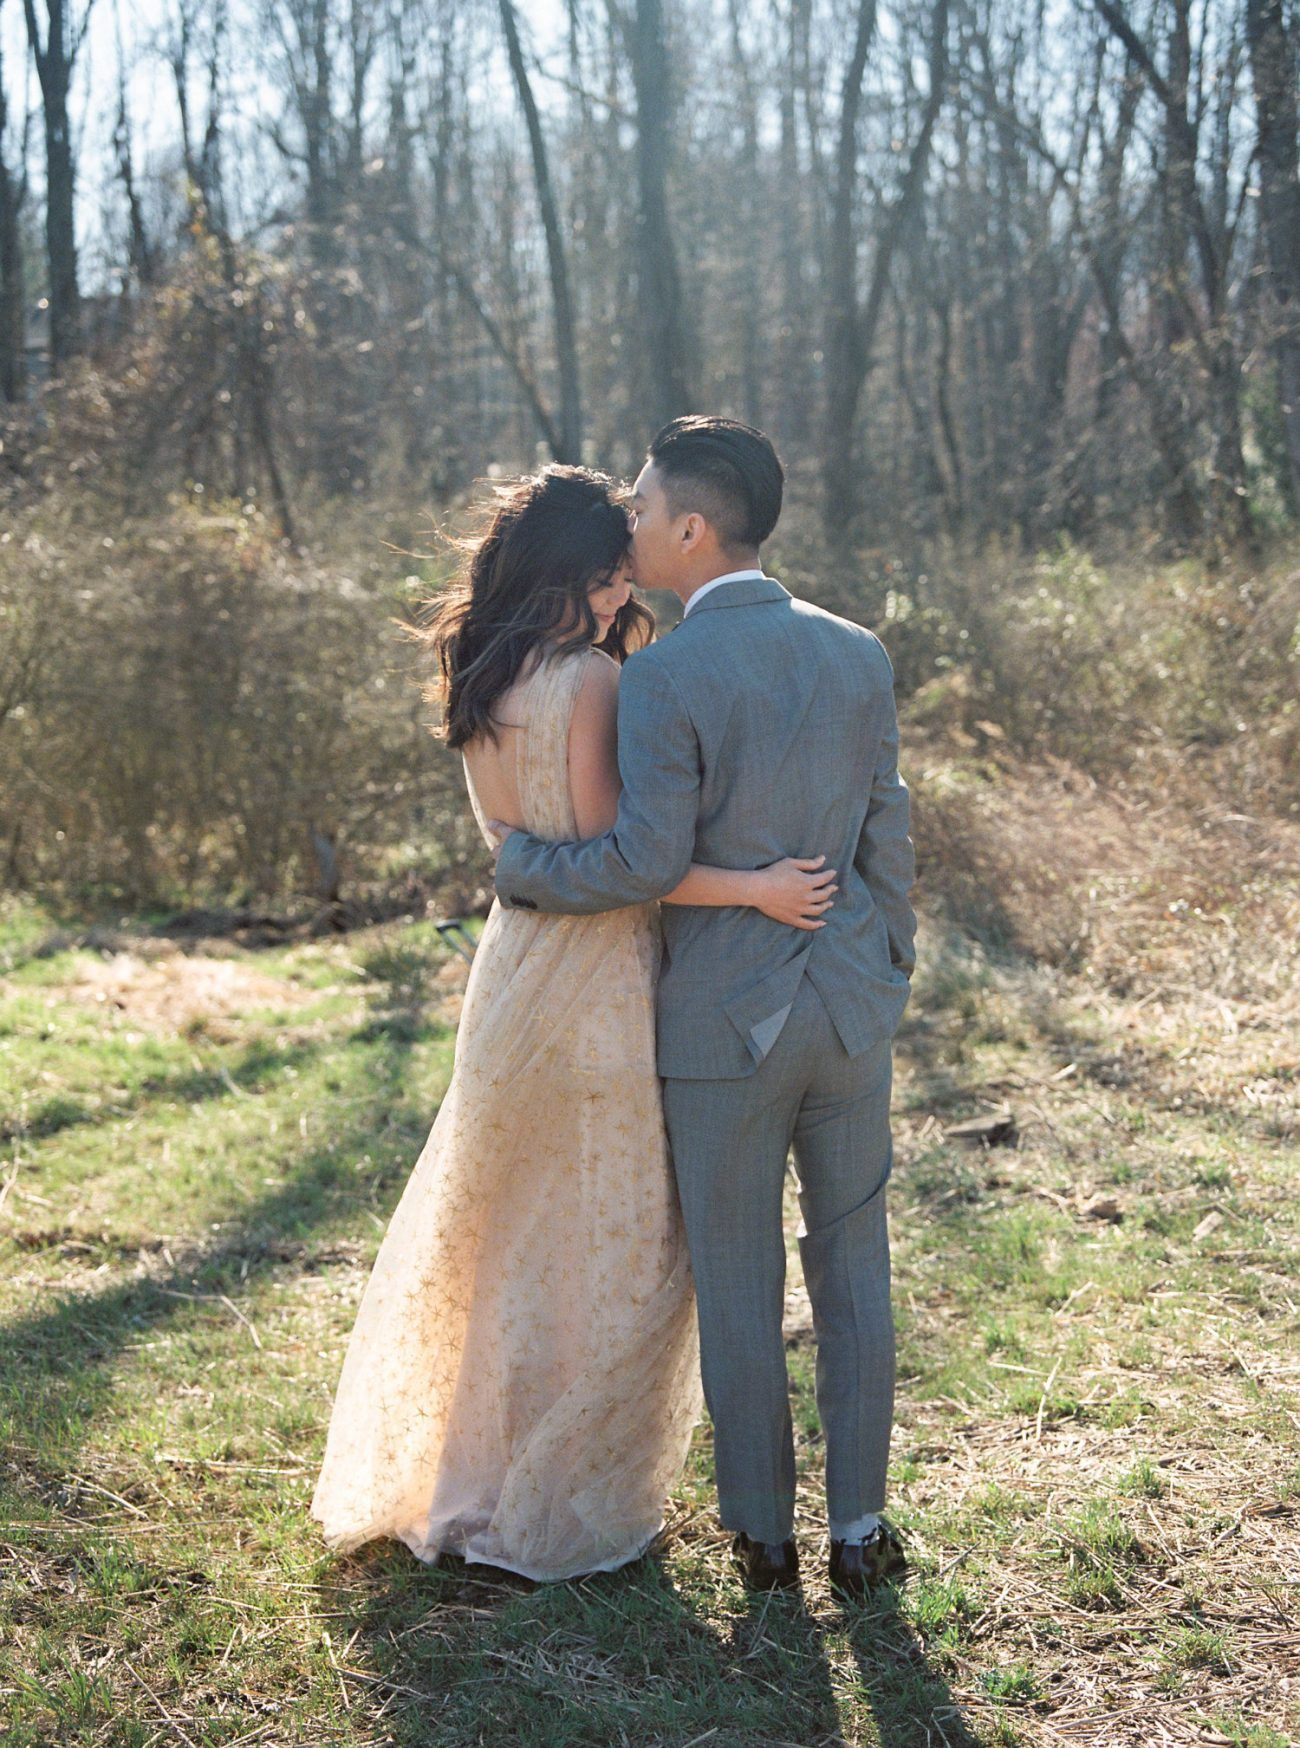 amelia_johnson_photography_Skye&John_engaged00096